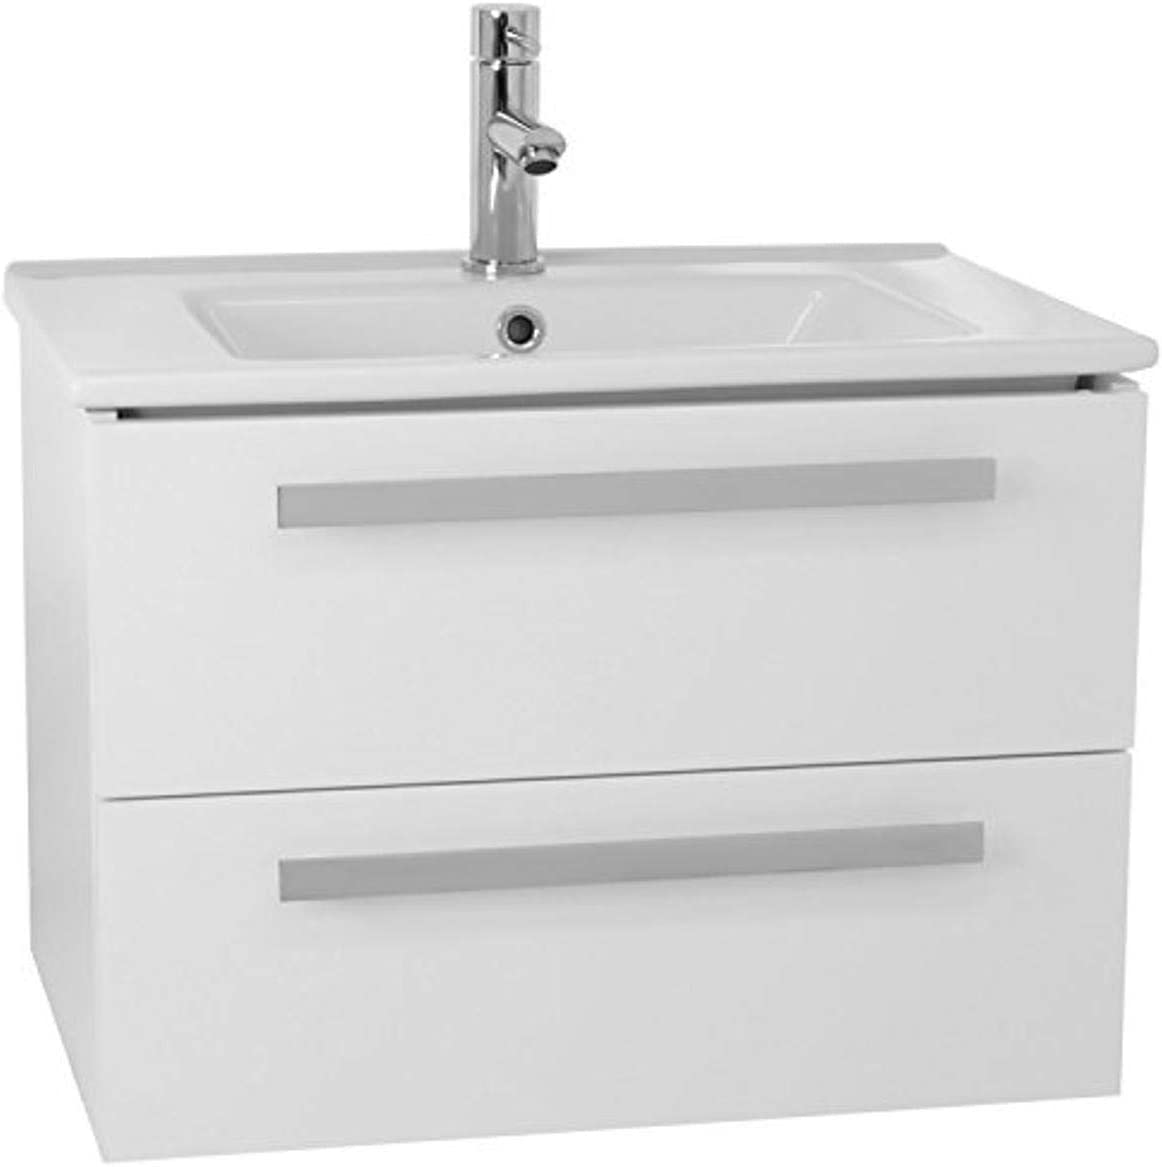 Acf Da25 Dadila Wall Mount Bathroom Vanity Set With 2 Drawers 25 Glossy White Amazon Com